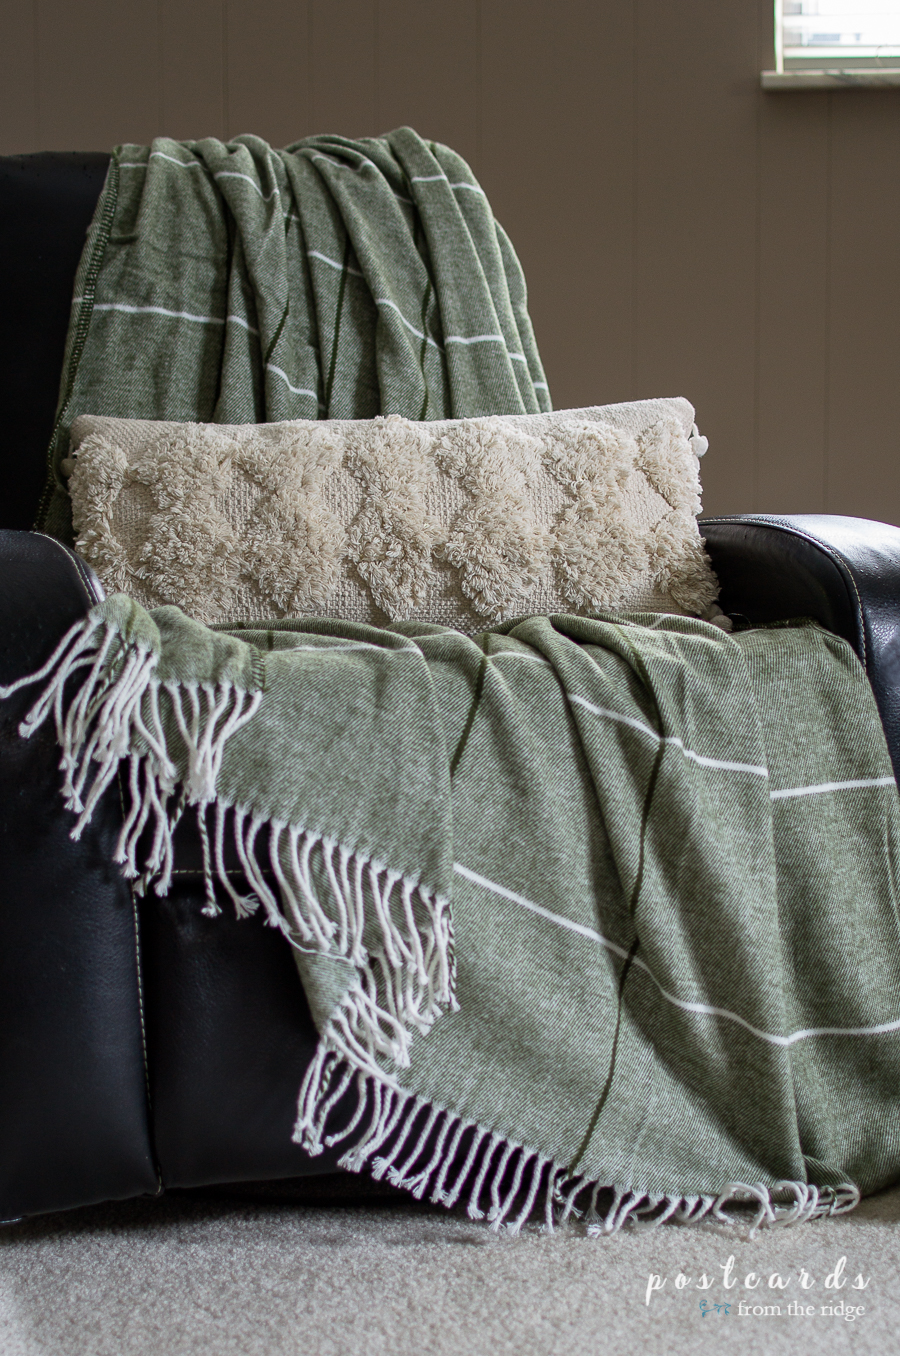 soft textured pillow and cozy throw blanket